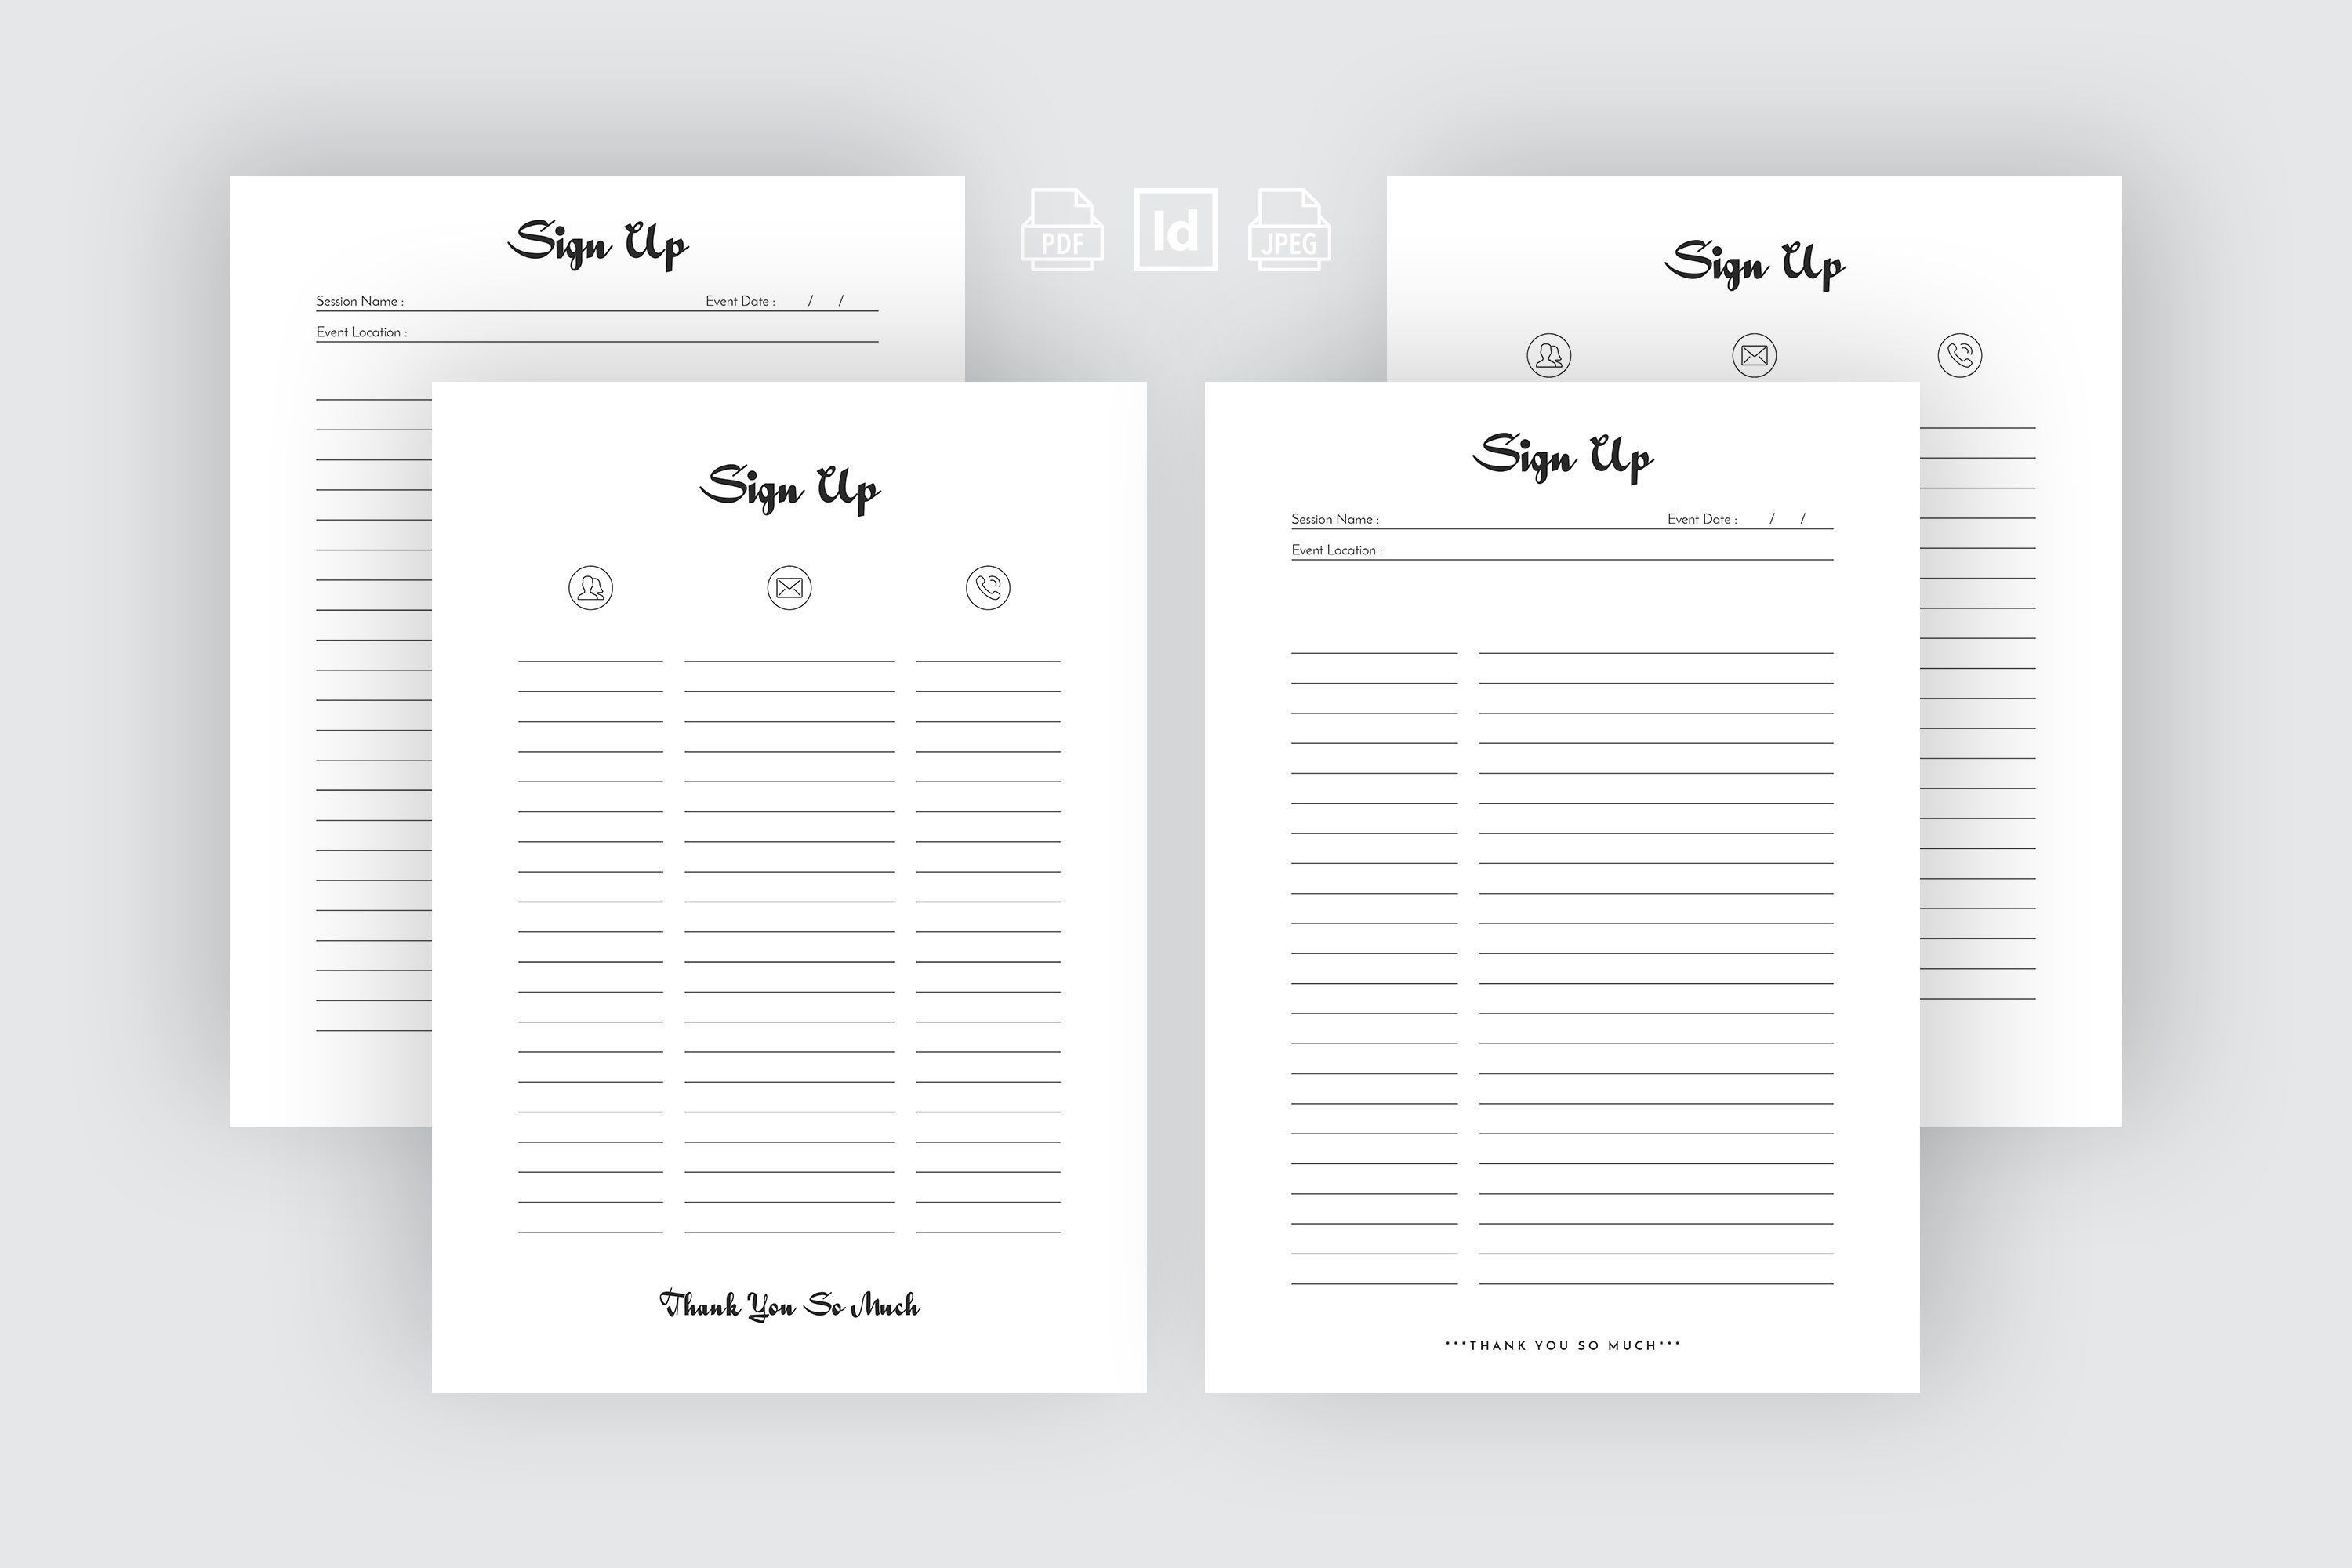 002 Sensational Email Sign Up Template High Resolution  Sheet Google DocFull